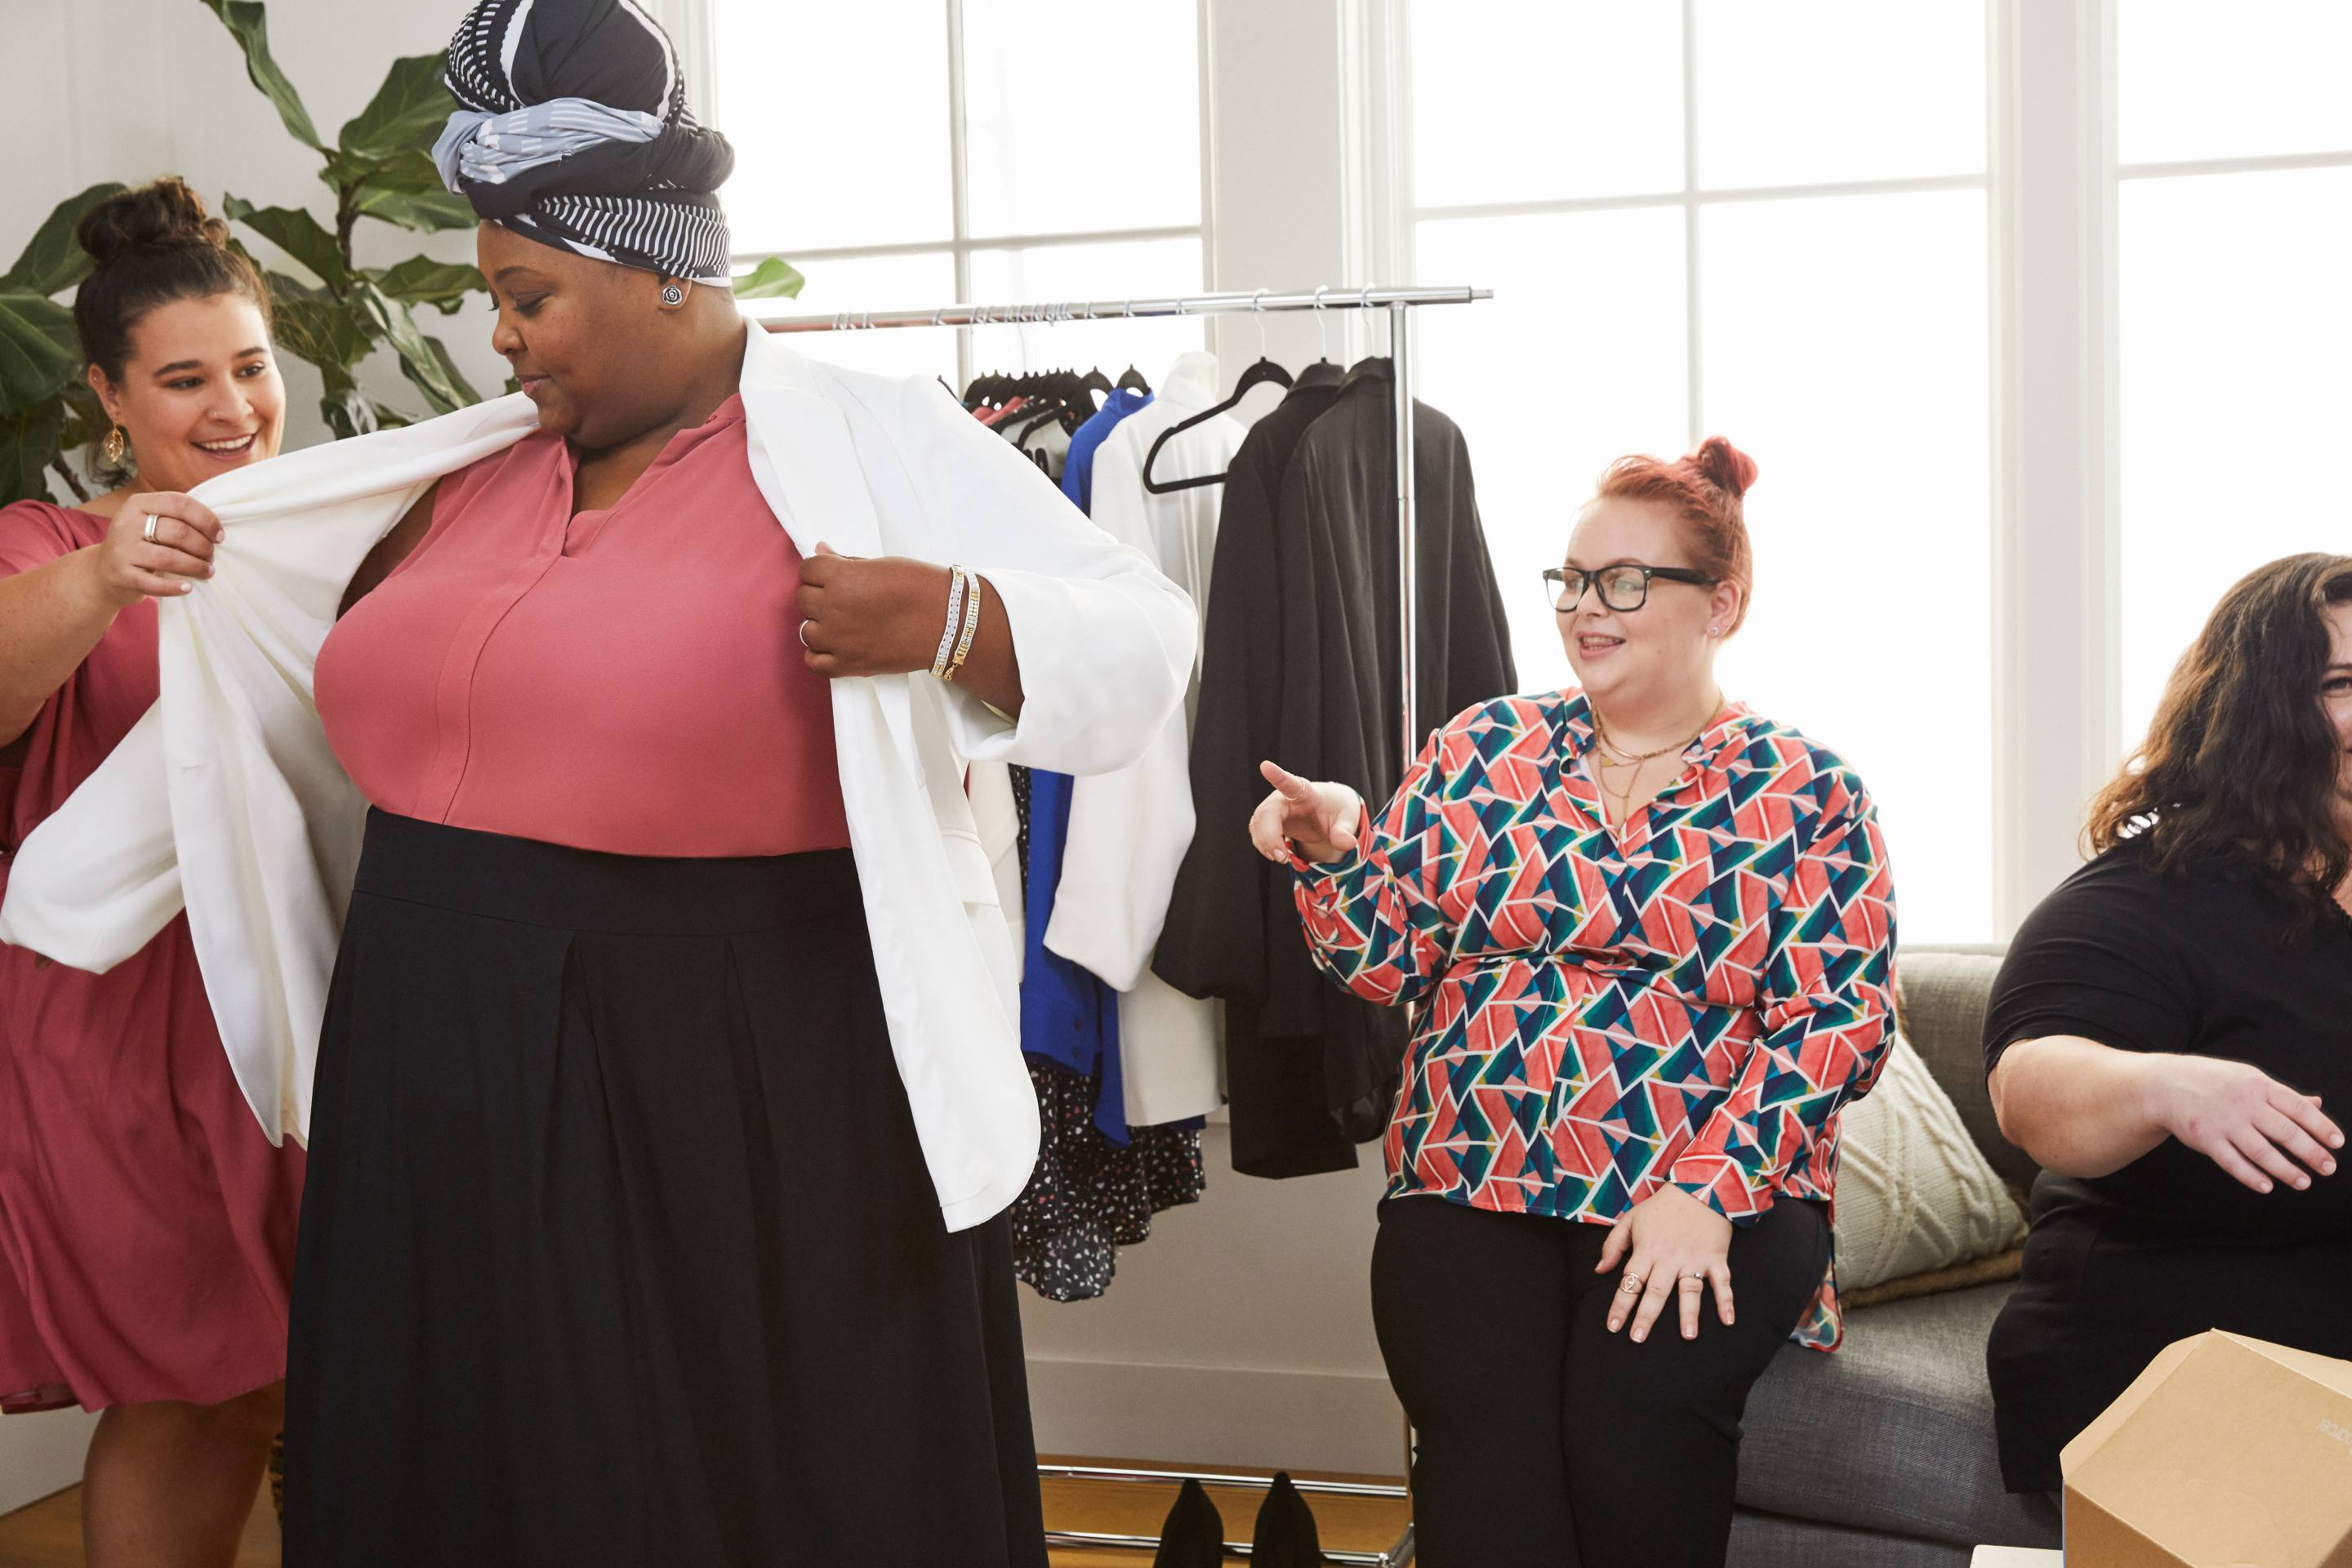 Part & Parcel sells plus-size clothing through independent sellers in a  model intended to overcome some of the drawbacks of multi-level marketing platforms.